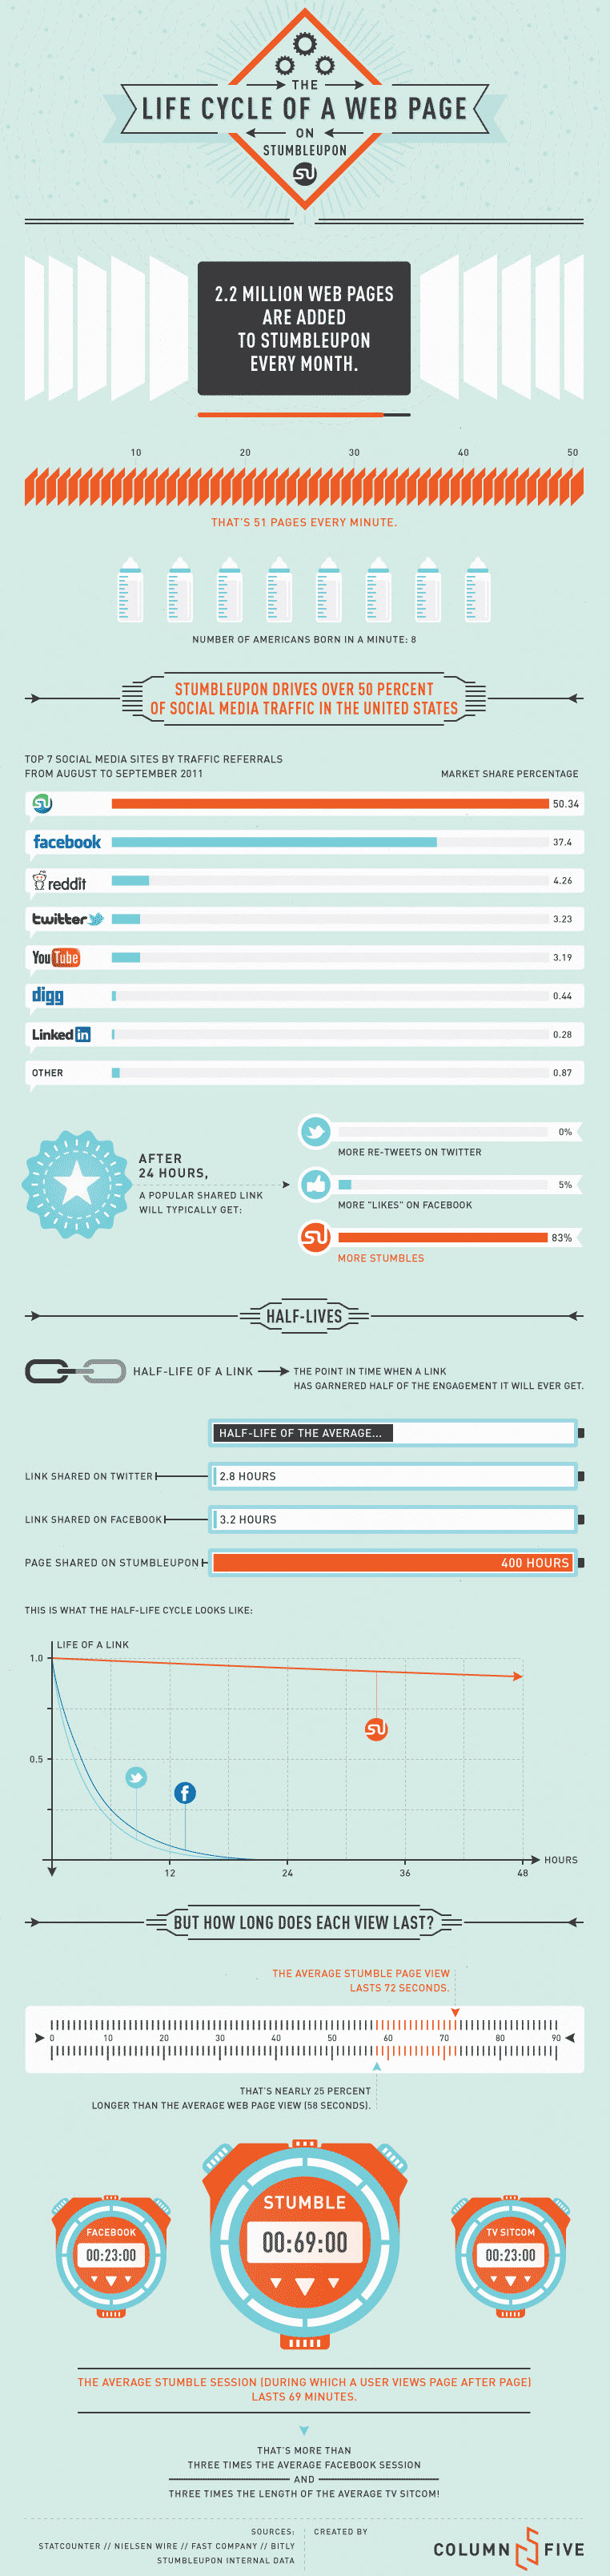 StumbleUpon Social Media Infographic